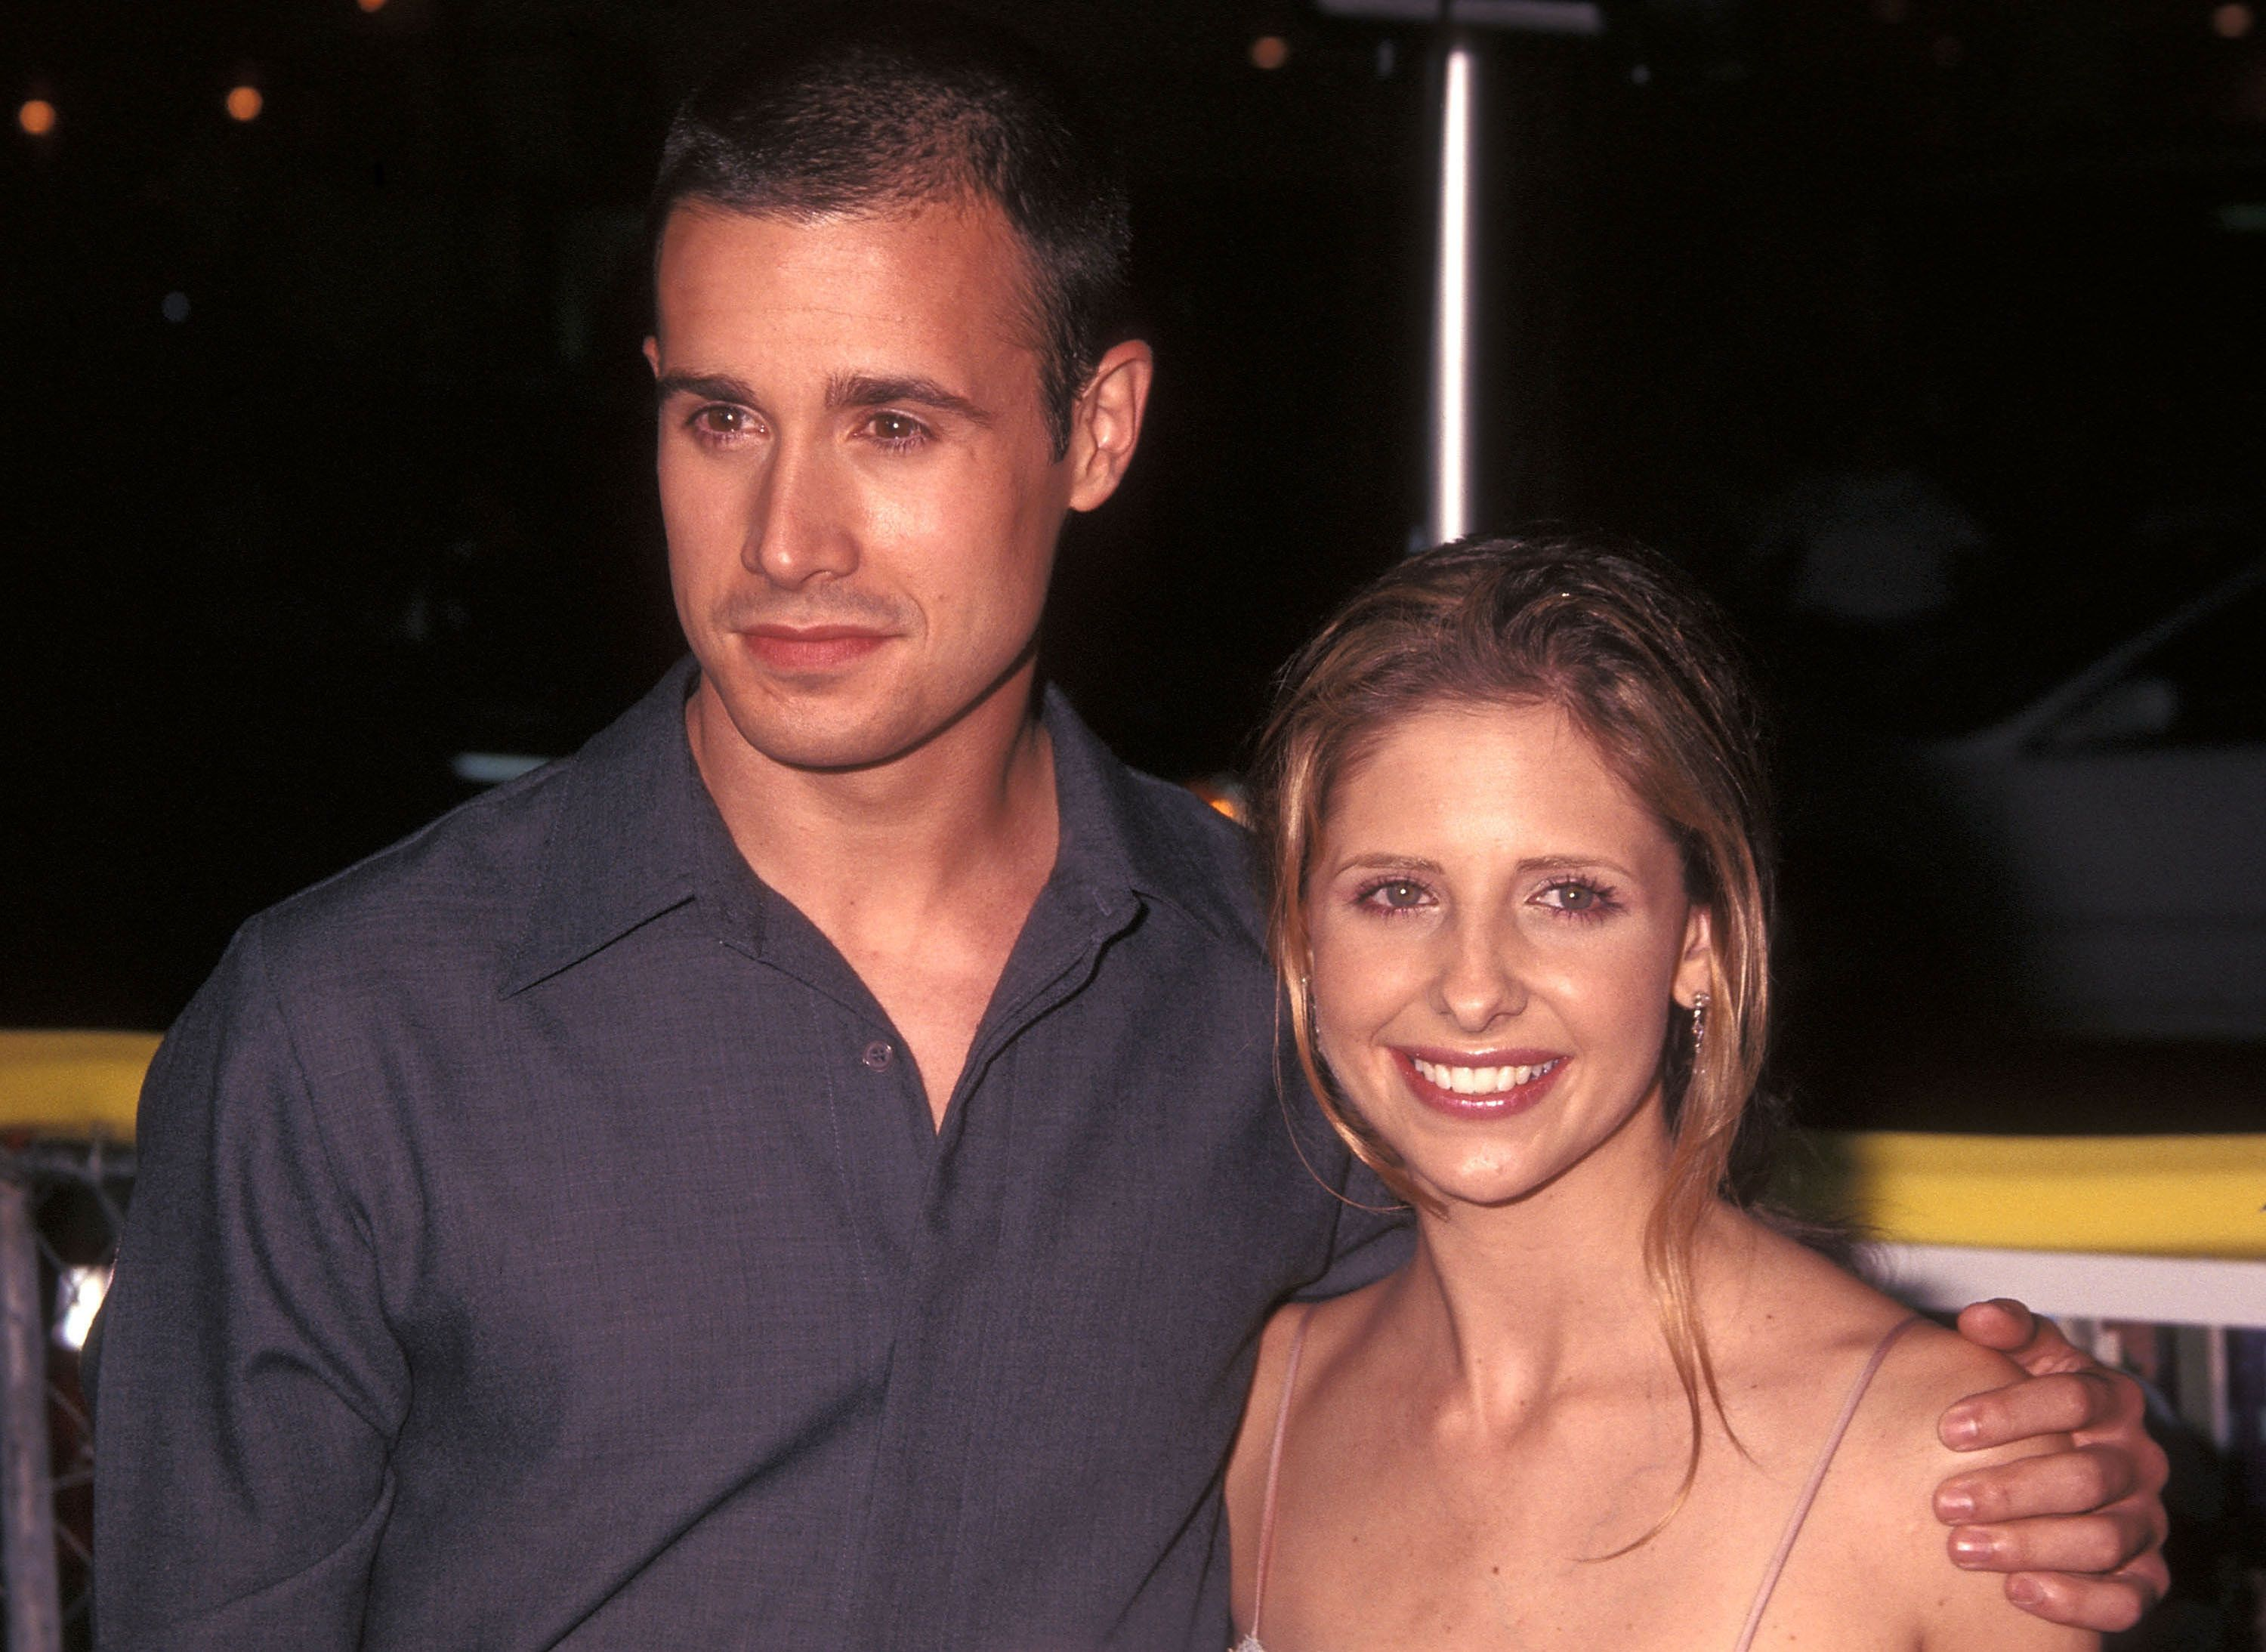 Actor Freddie Prinze, Jr. and actress Sarah Michelle Gellar attend the 'Summer Catch' Westwood Premiere on August 22, 2001 at Mann Village Theatre in Westwood, California.